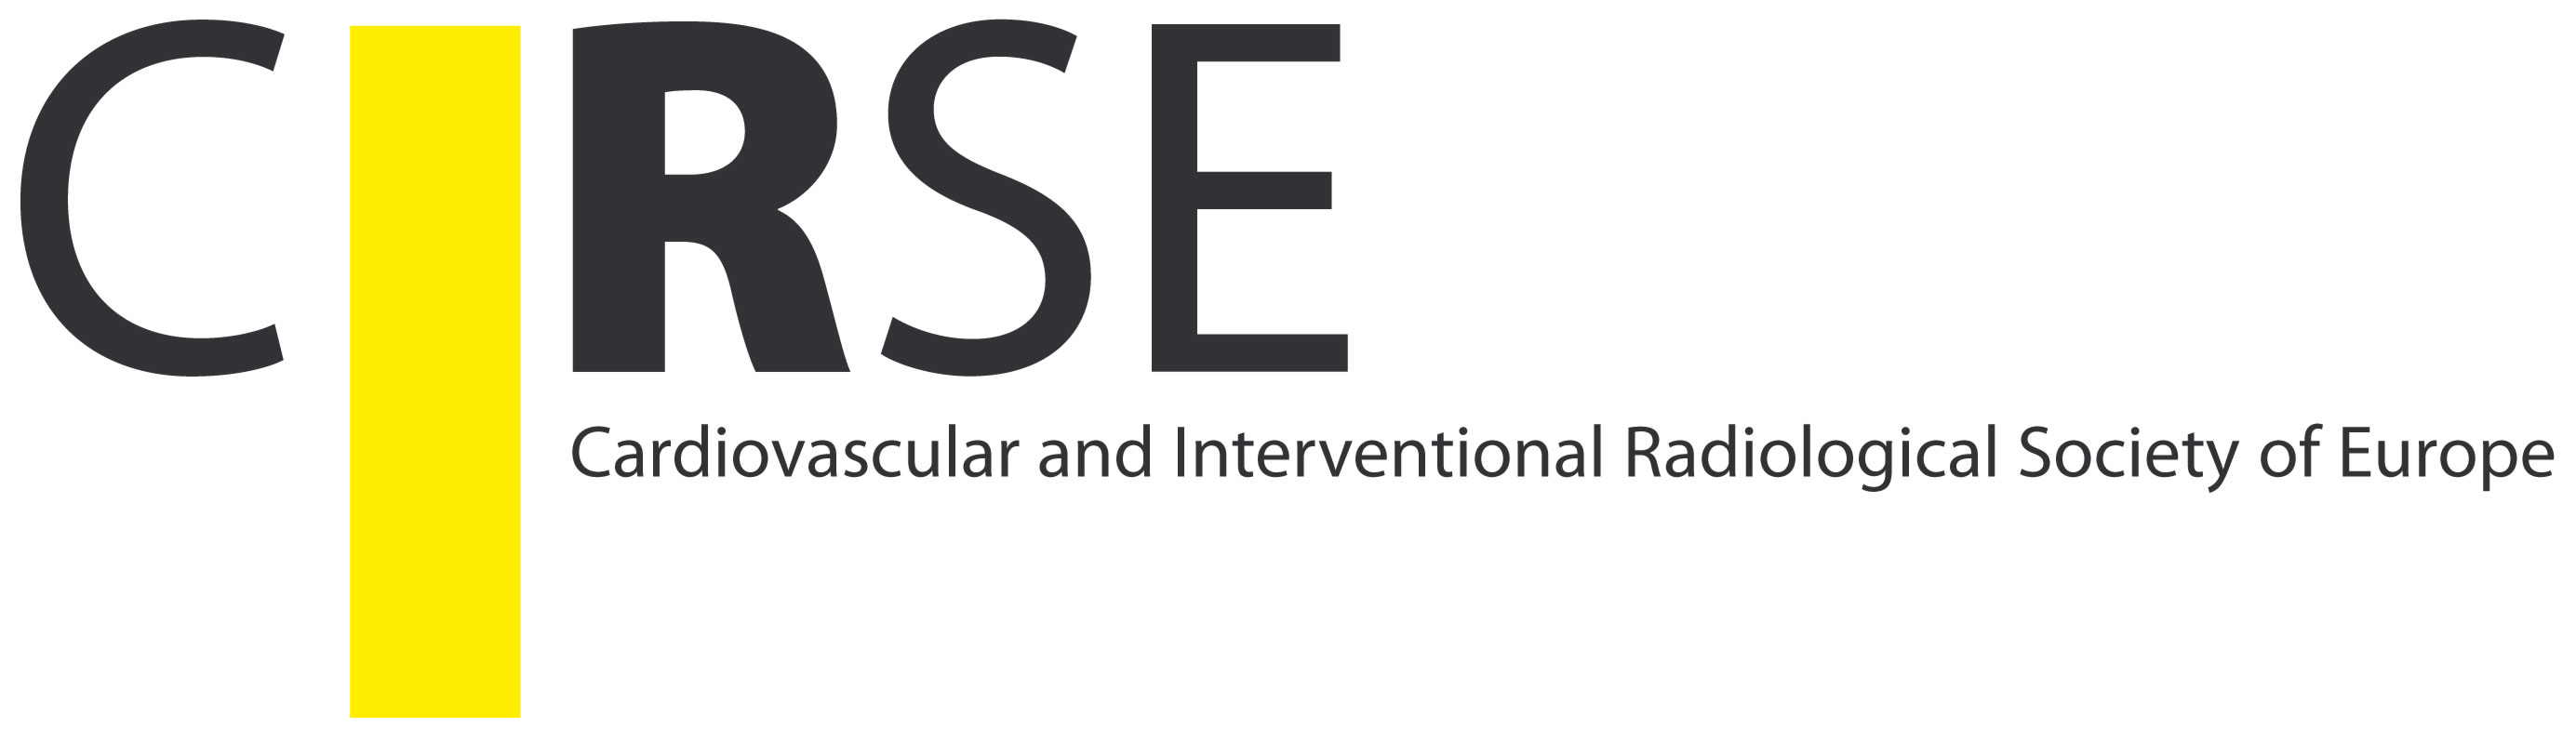 logo for Cardiovascular and Interventional Radiological Society of Europe